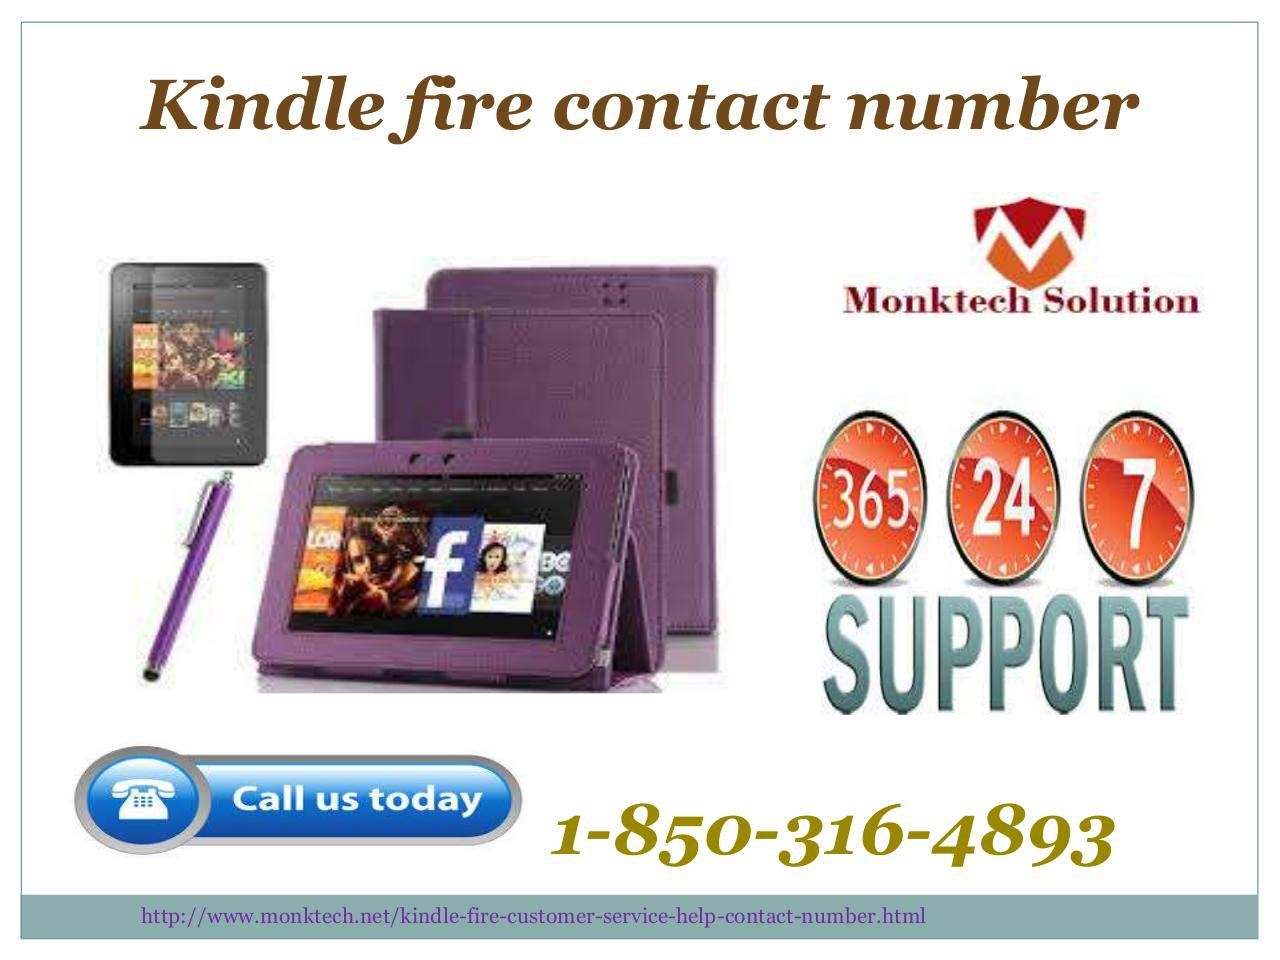 Can i call at amazon kindle fire contact number 1 850 316 4893